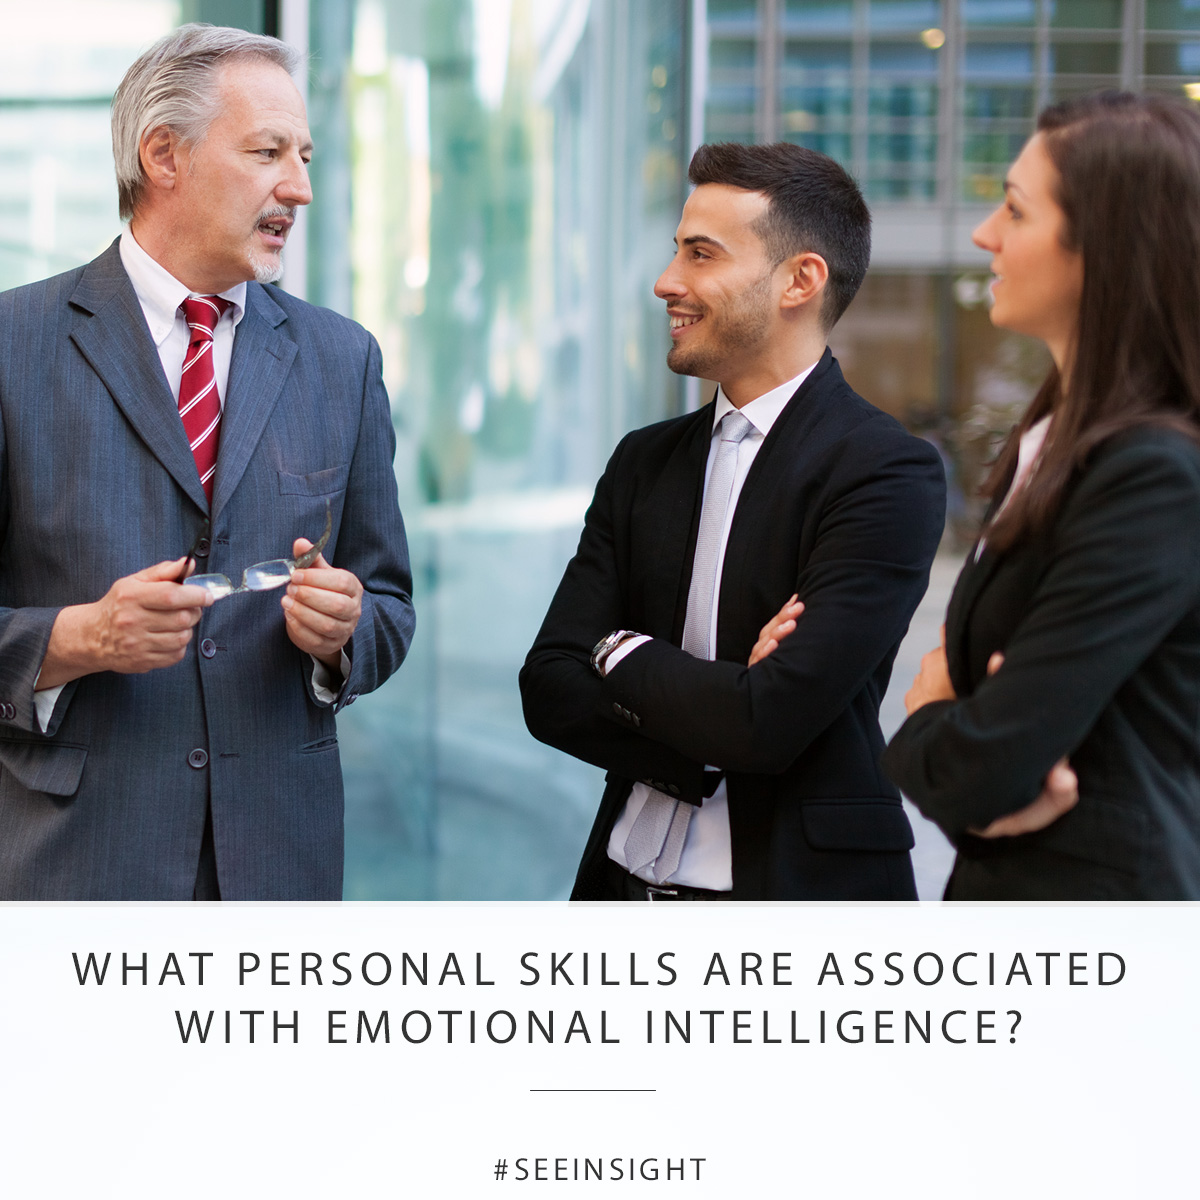 What personal skills are associated with emotional intelligence?